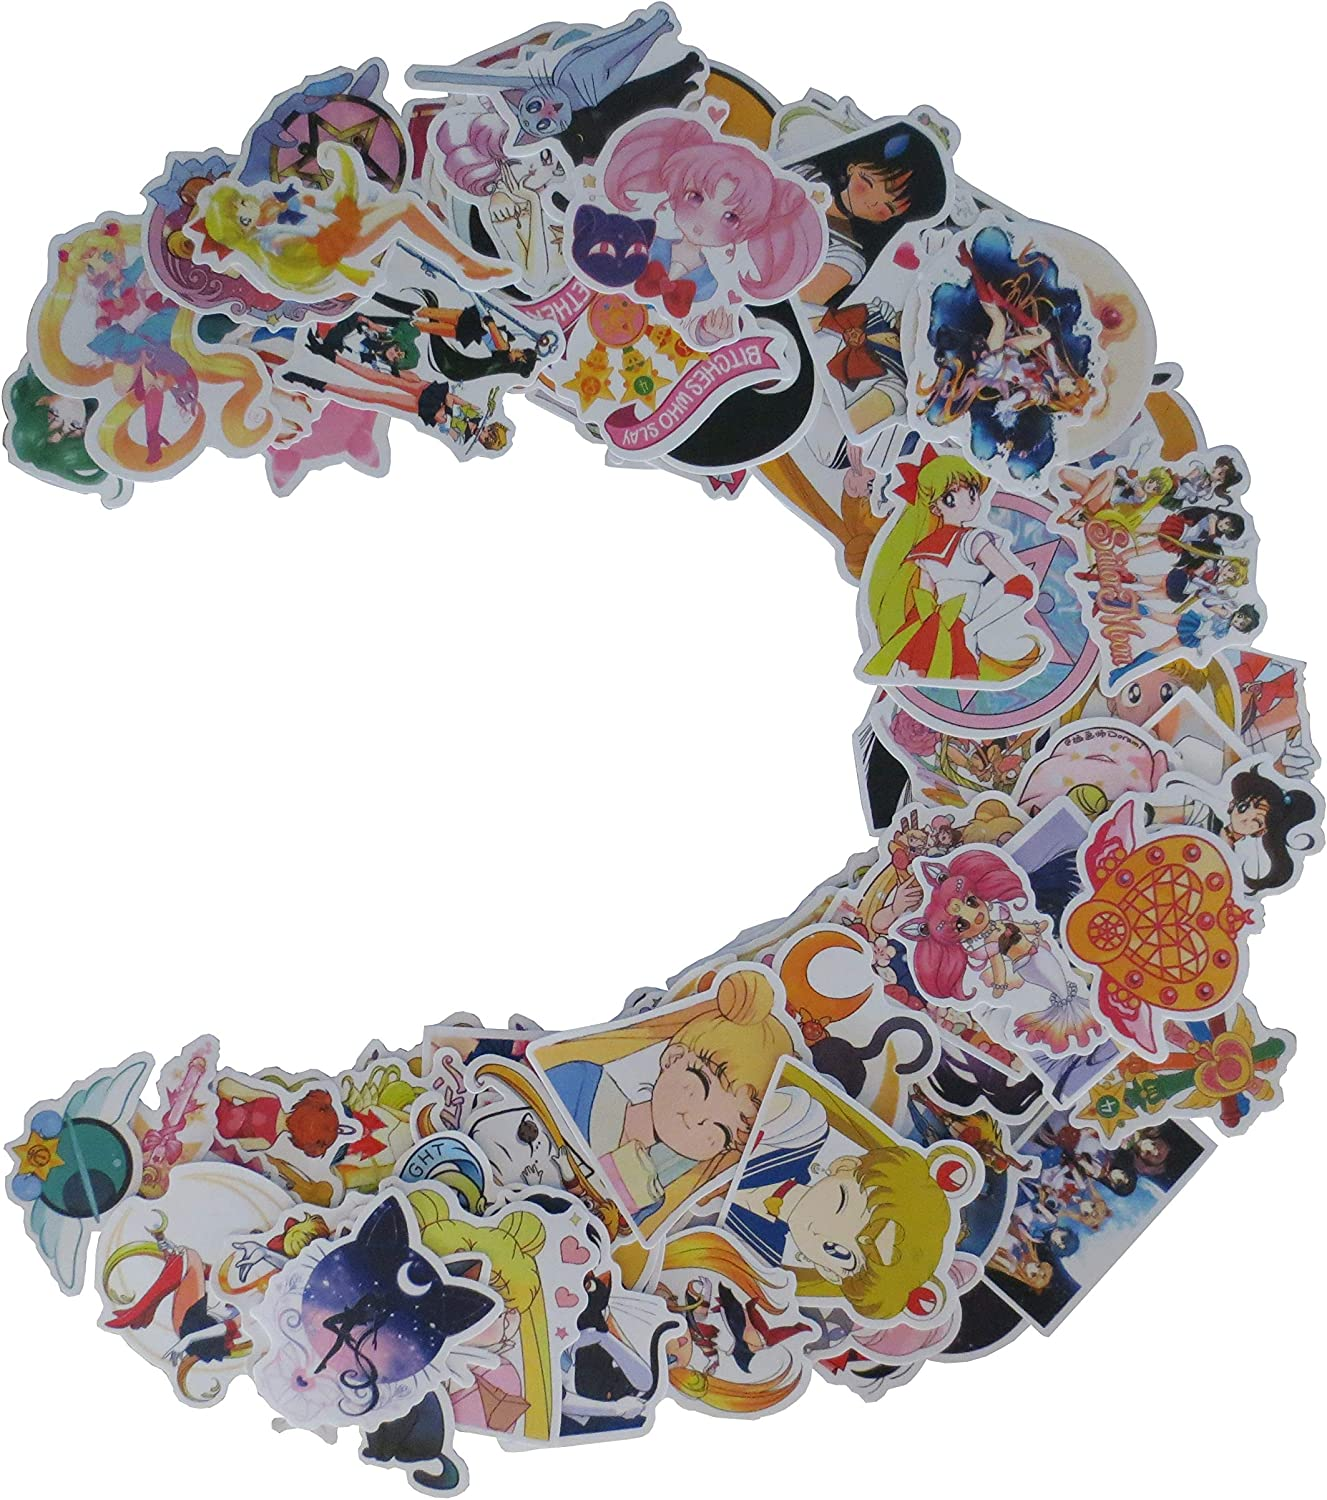 100PCS Sailor Moon Stickers for Water Bottles,Classic Japanese Cartoon Anime...